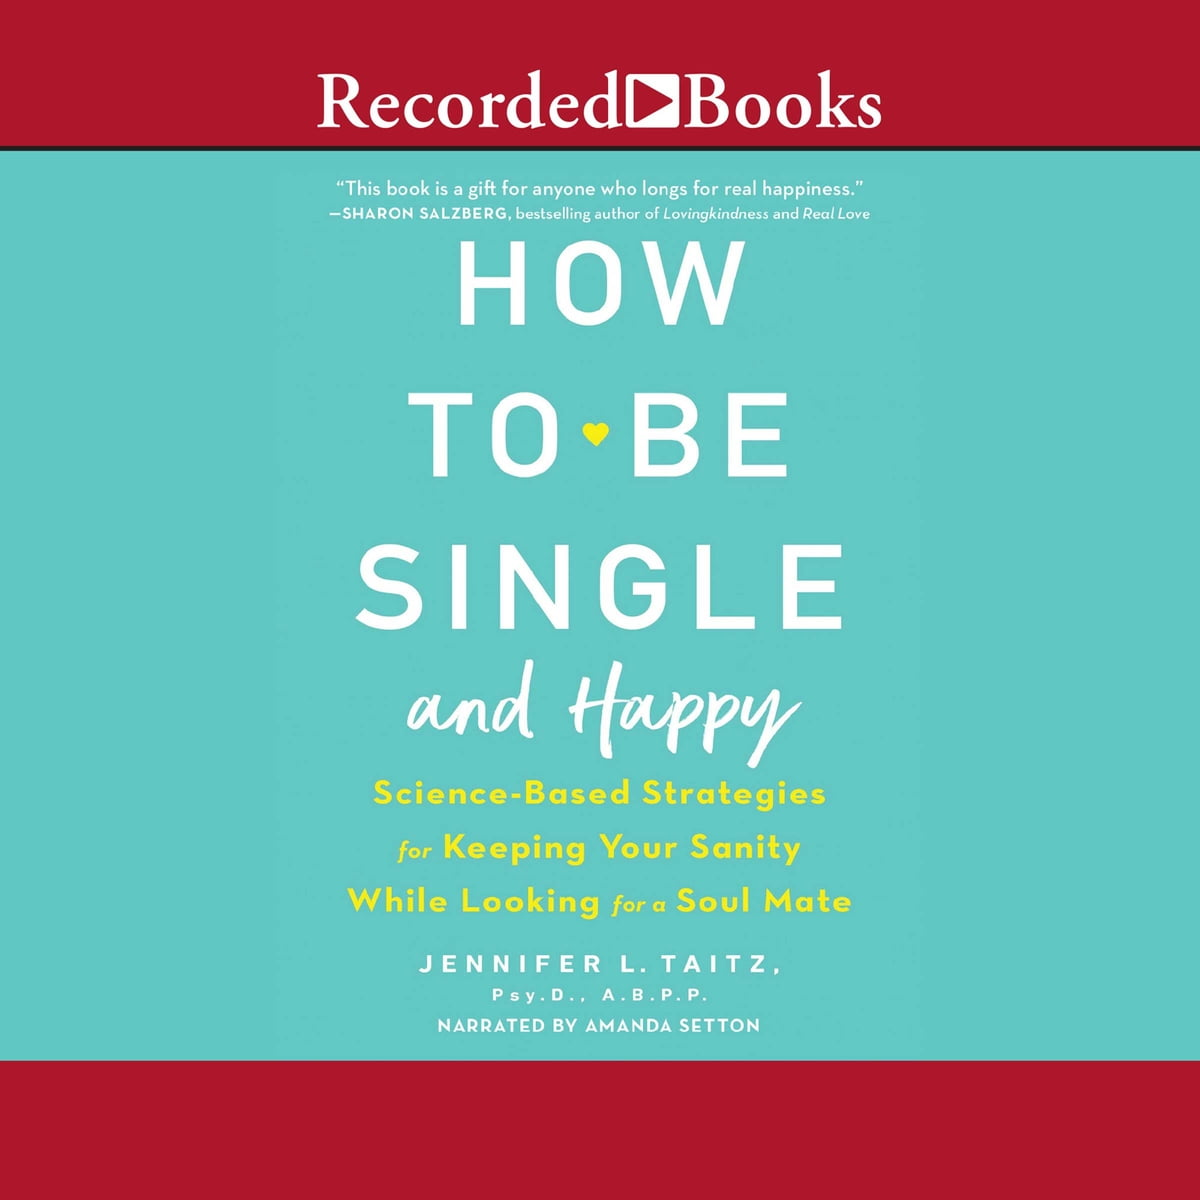 How to be single and happy audiobook by jennifer l taitz how to be single and happy audiobook by jennifer l taitz 9781501972355 rakuten kobo ccuart Images